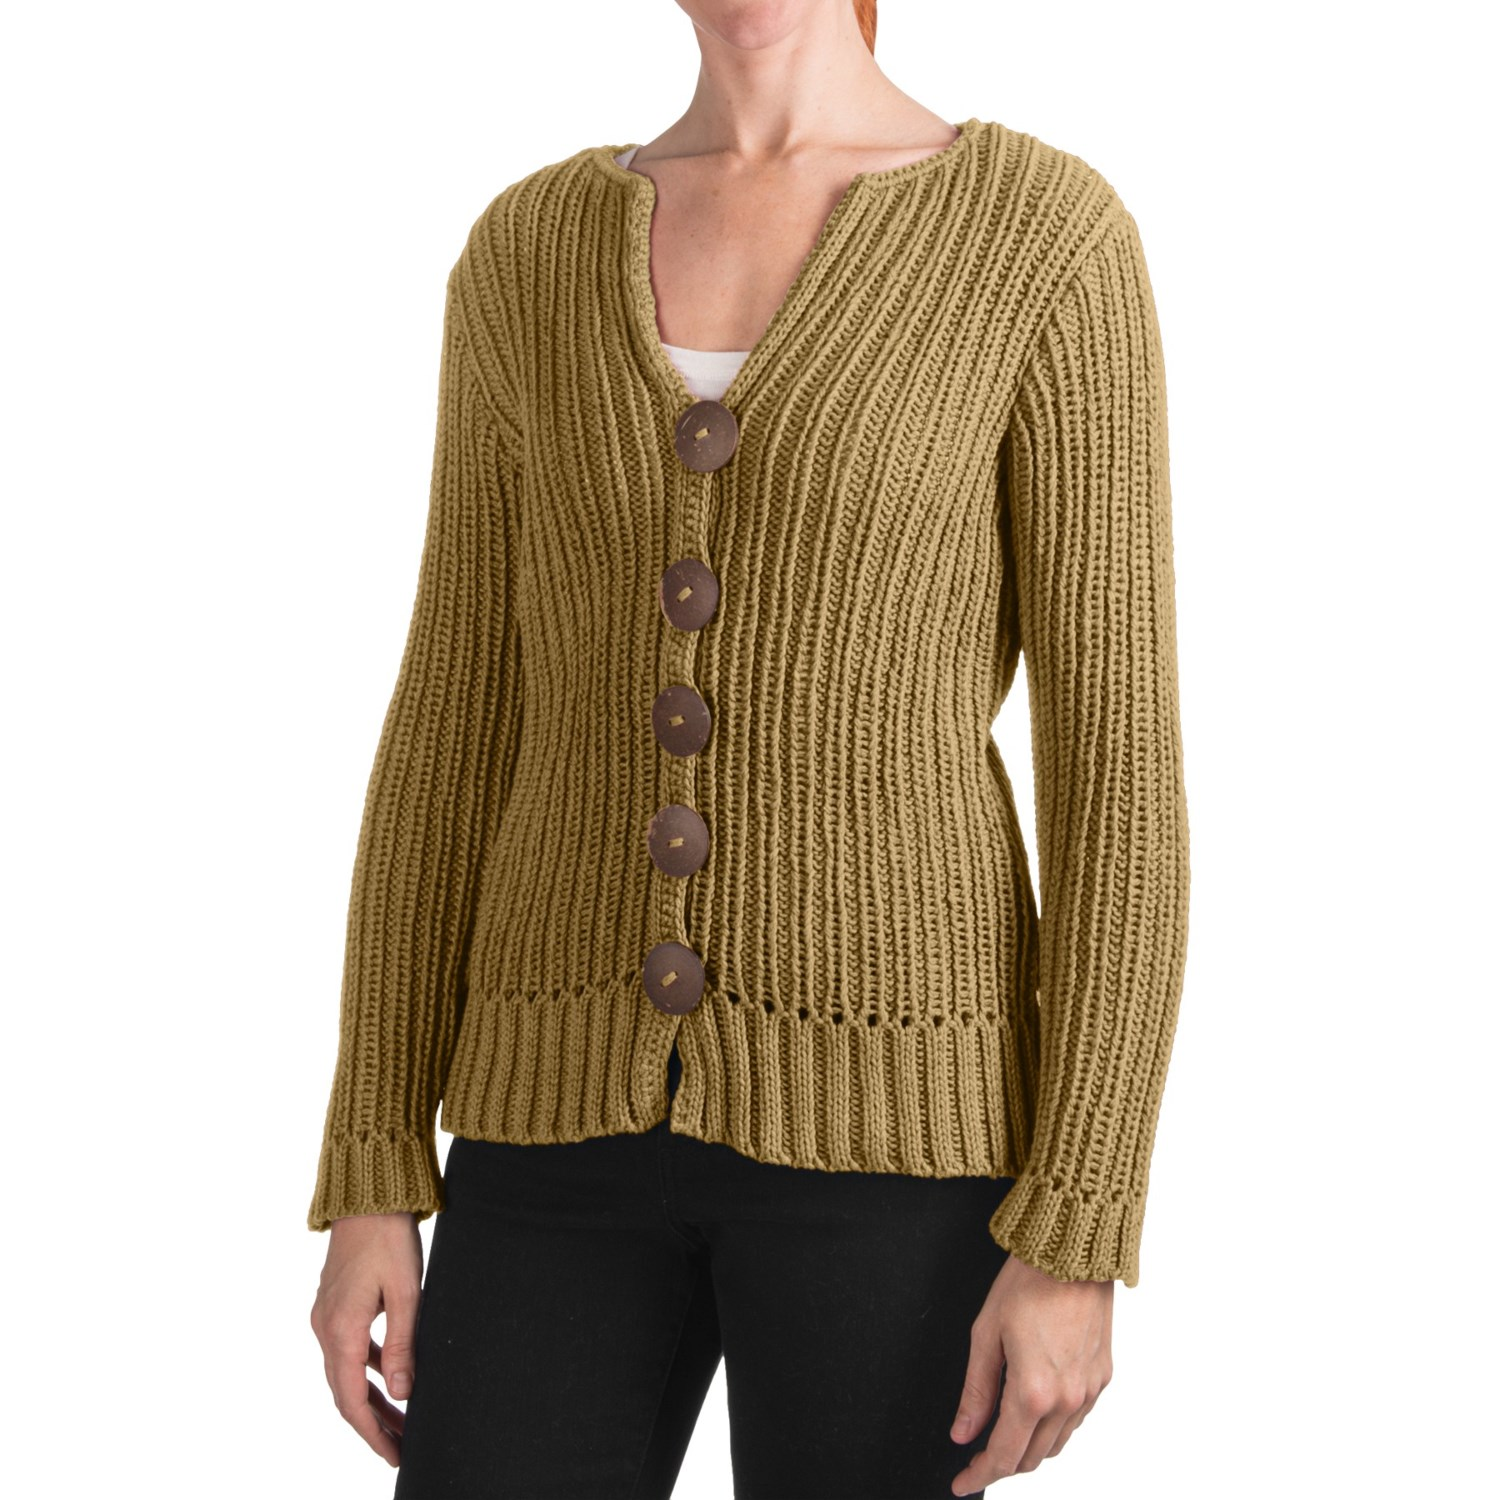 Pure Handknit Ranong Cardigan Sweater (For Women) - Save 39%